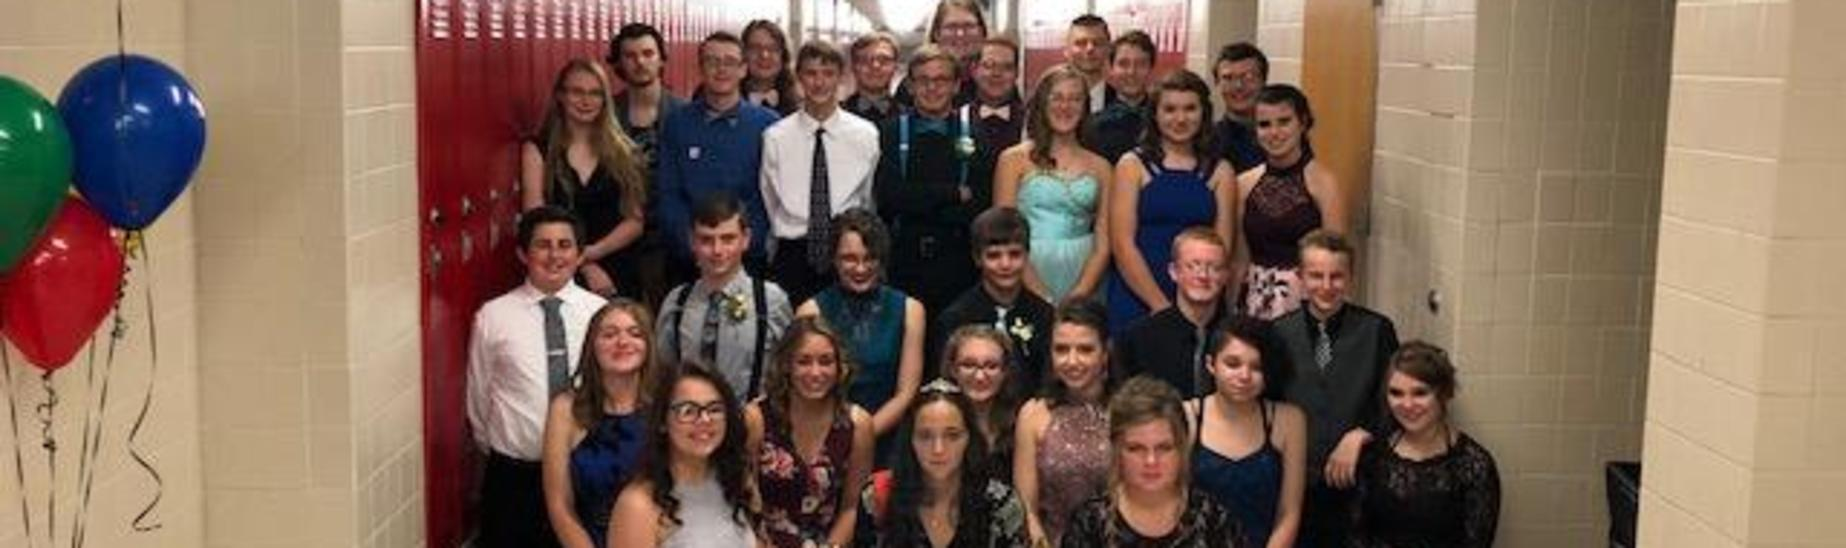 Homecoming Dance 2018